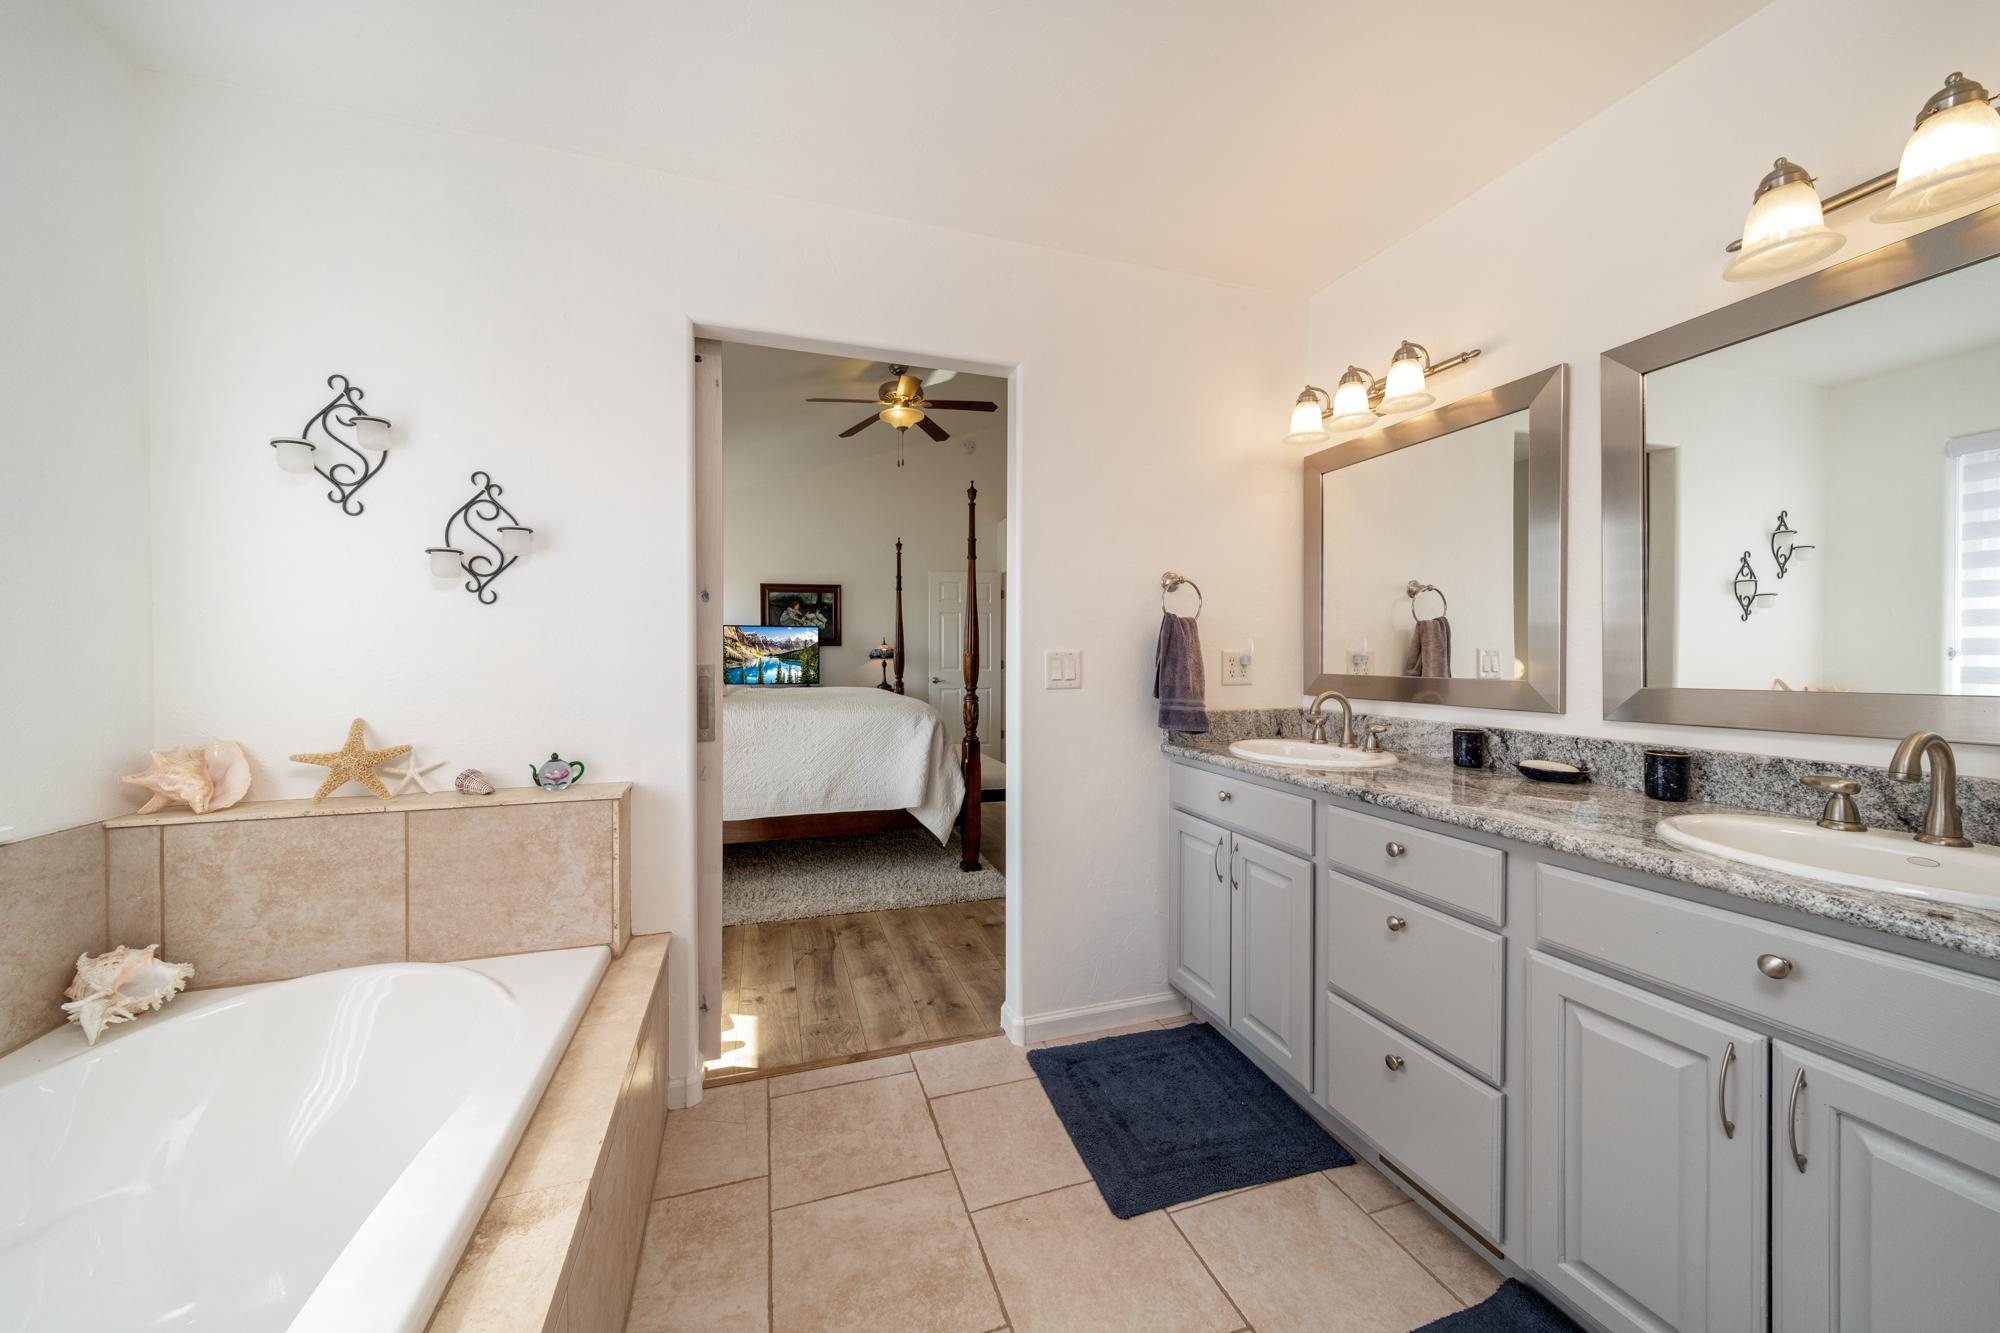 Primary Bathroom with Dual Sinks - 15552 6120 Rd Montrose, CO 81403 - Atha Team Country Real Estate